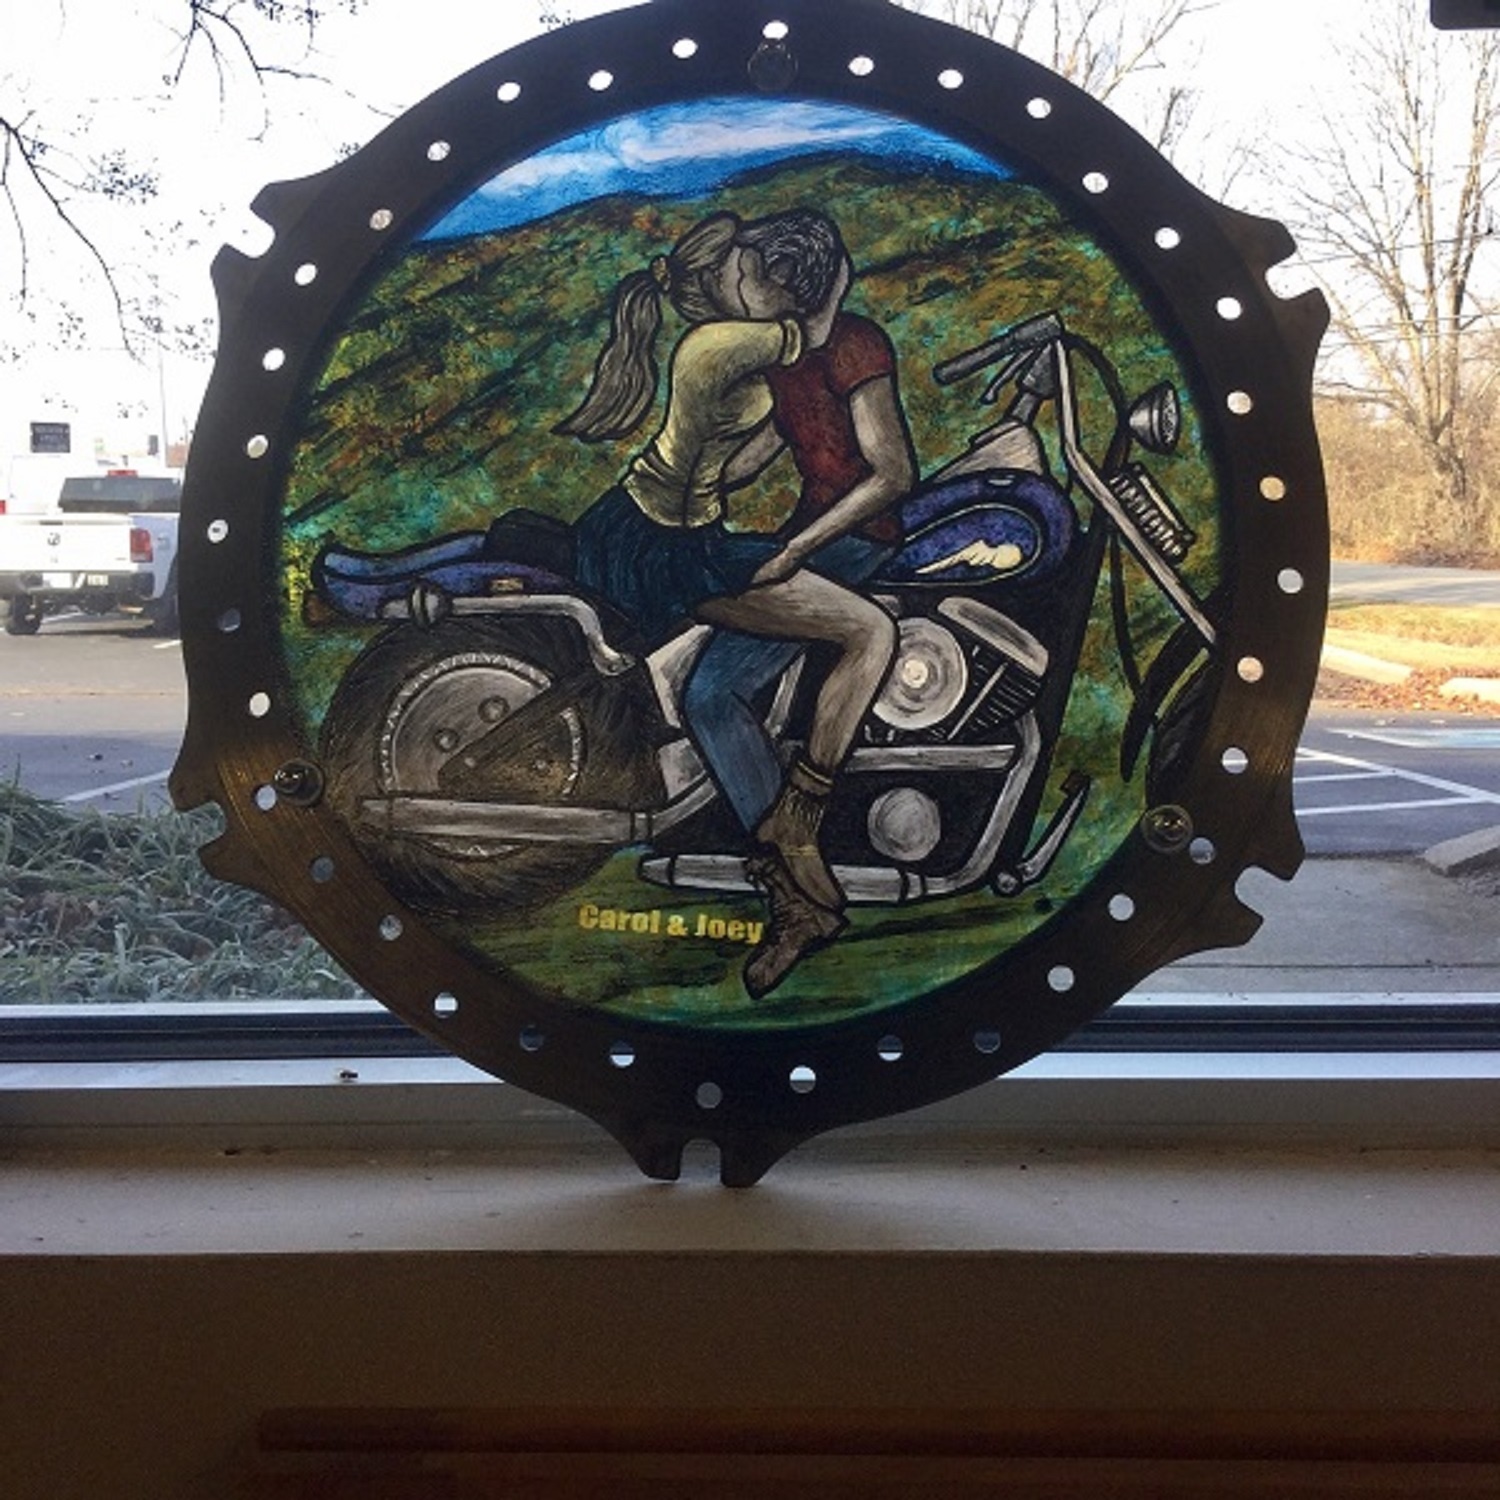 Painted glass in motorcycle gear